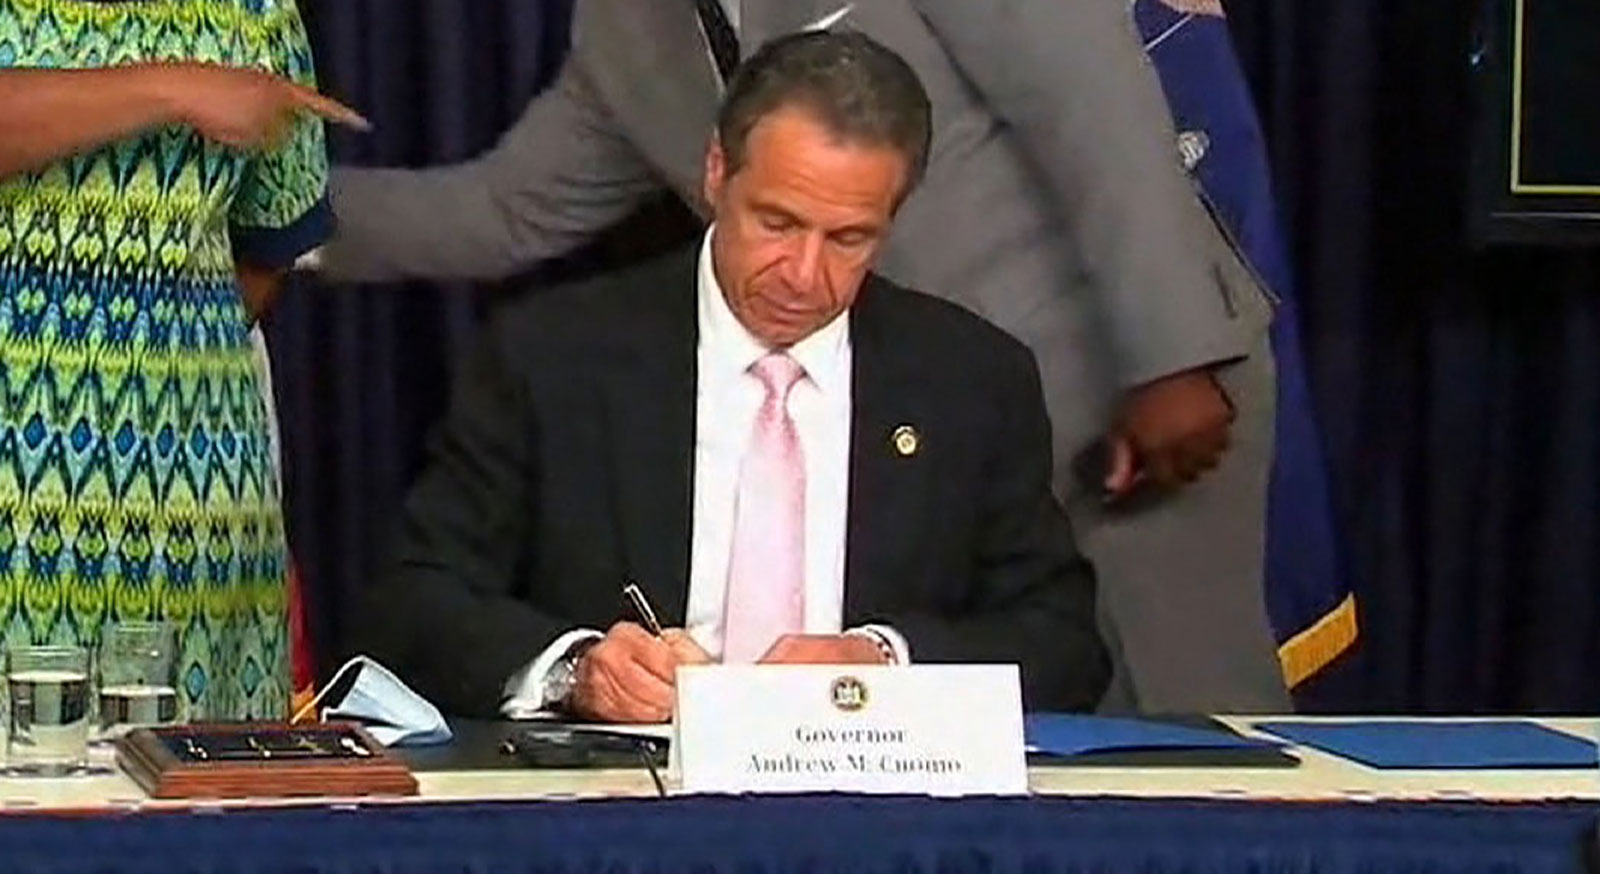 New York Gov. Andrew Cuomo signs police reform bills at a news conference on June 12.